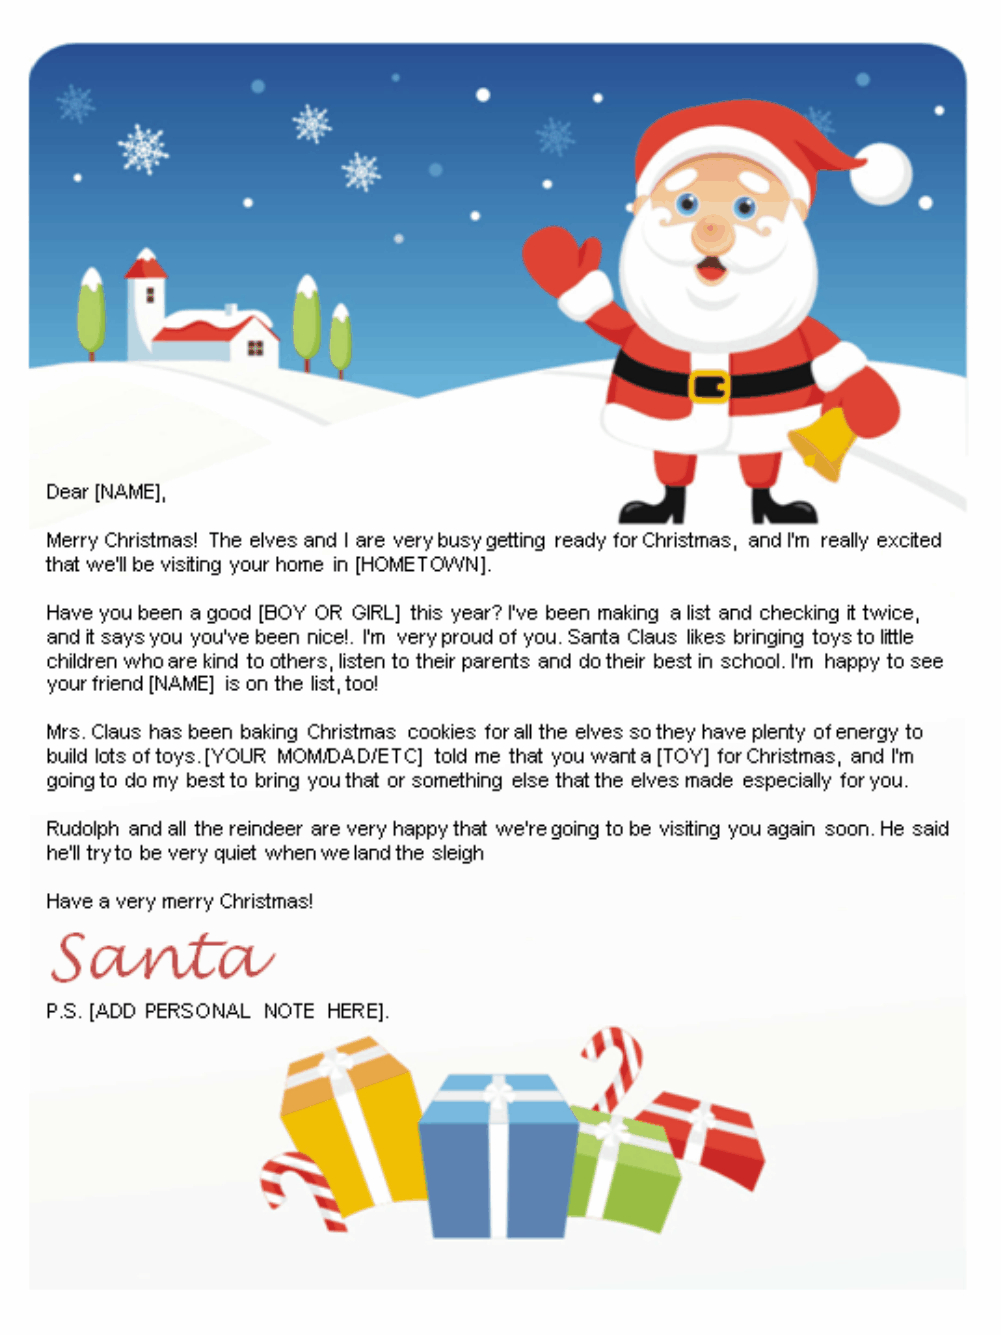 Free Letters From Santa   Santa Letters To Print At Home - Gifts - Free Printable Christmas Letters From Santa